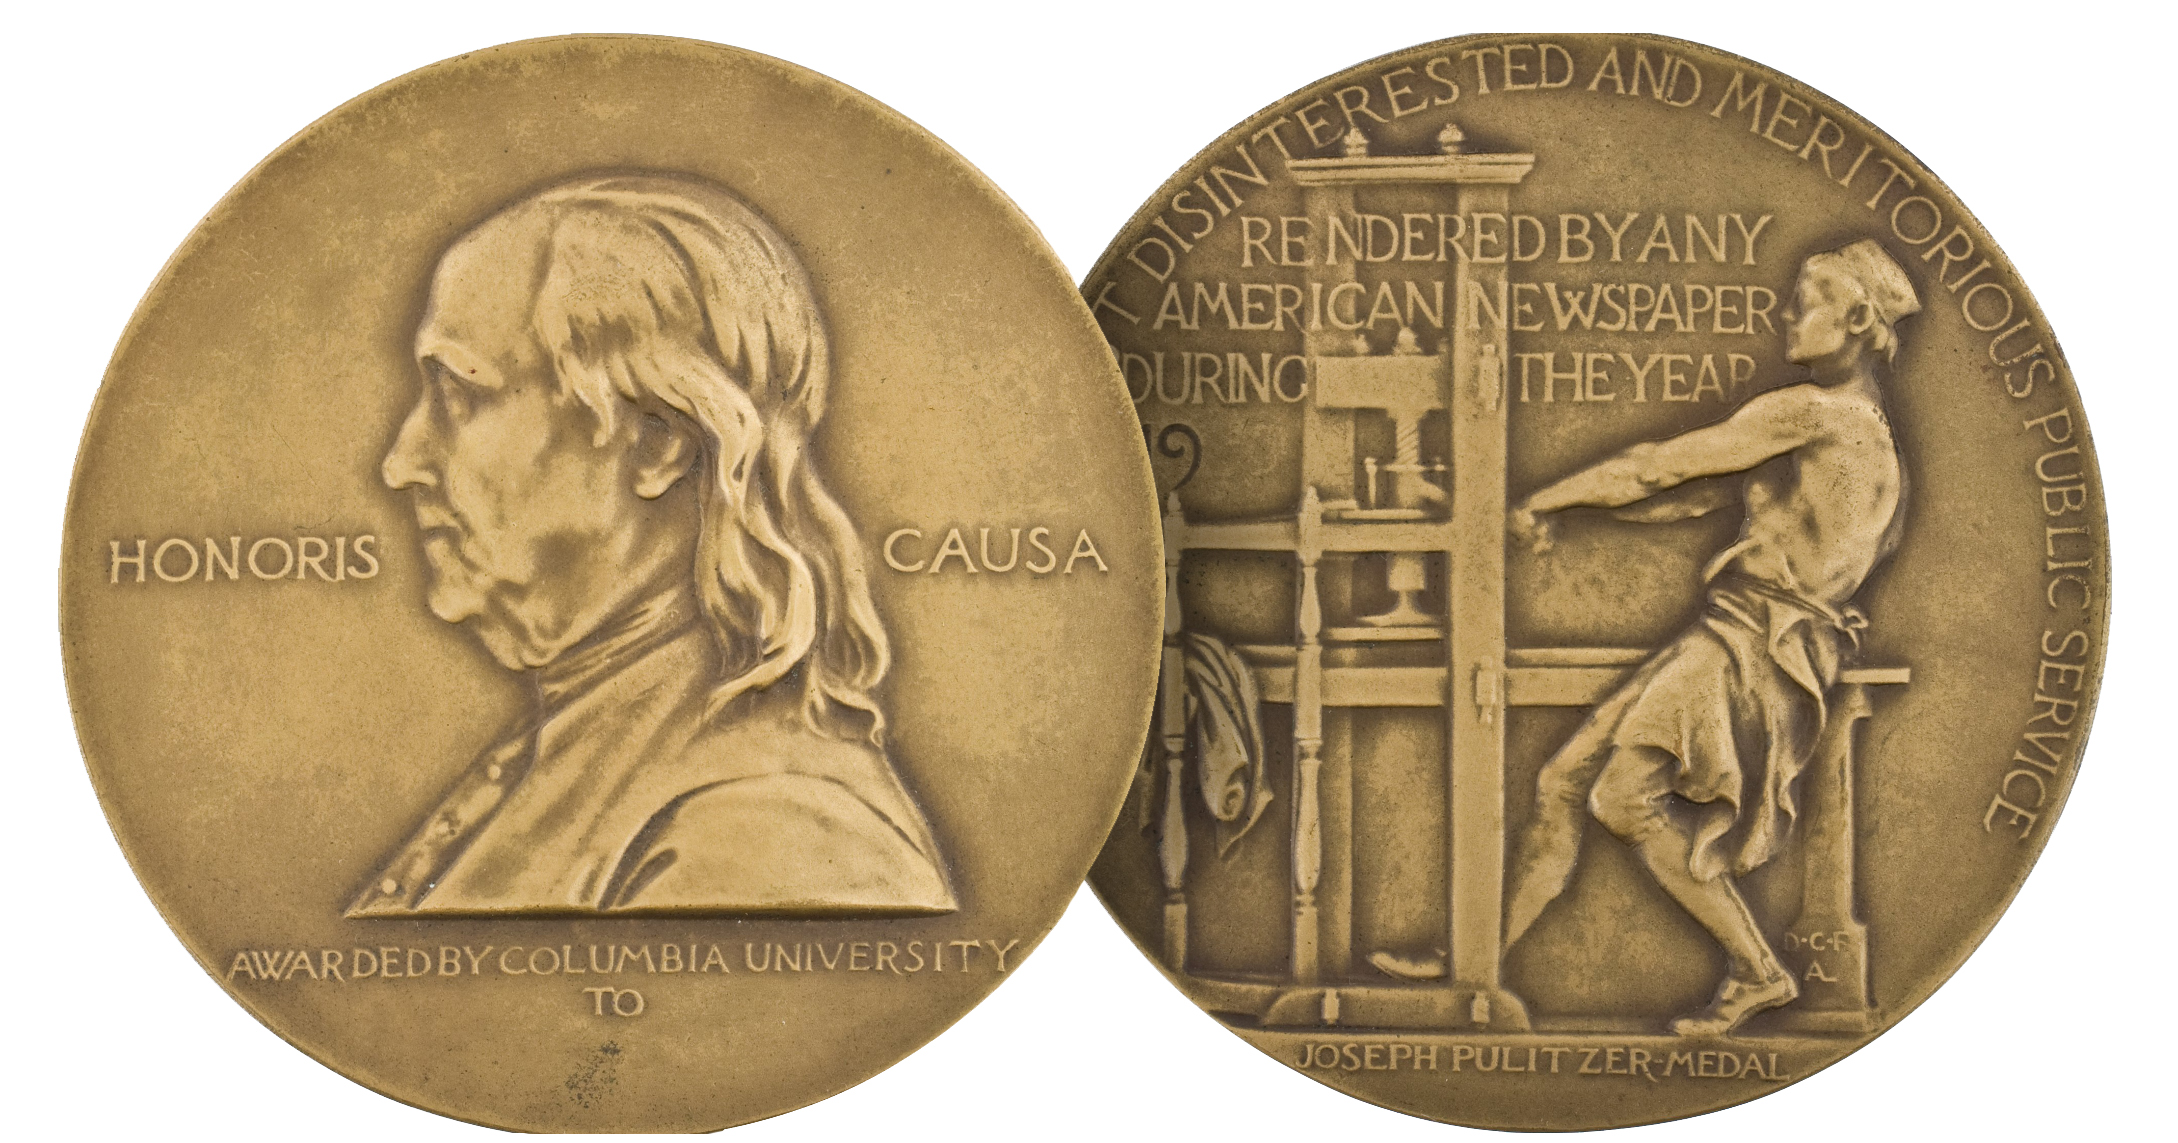 The two sides of a Pulitzer Prize medal awarded in 1917.